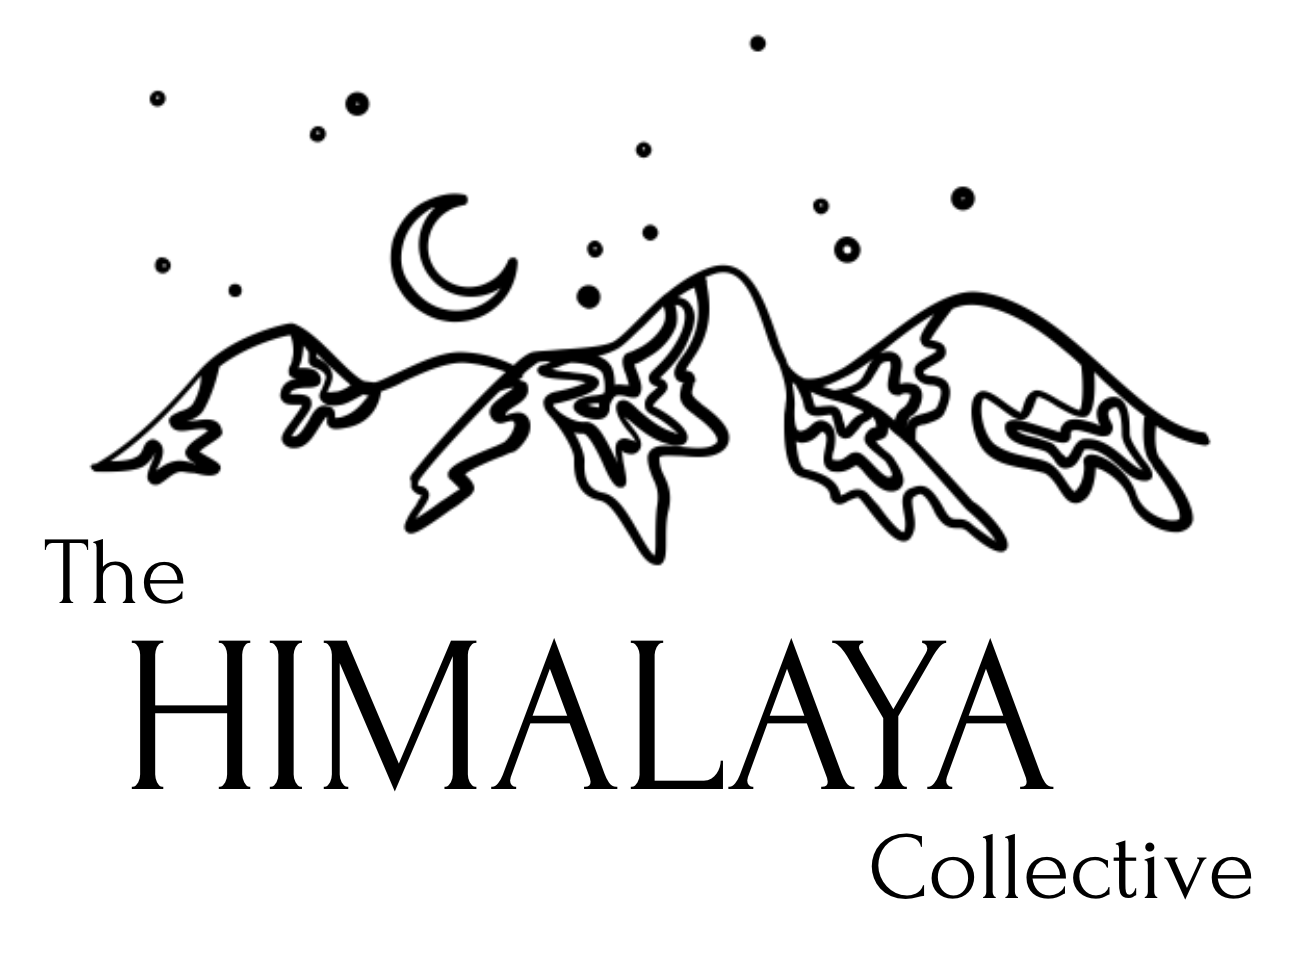 The Himalaya Collective